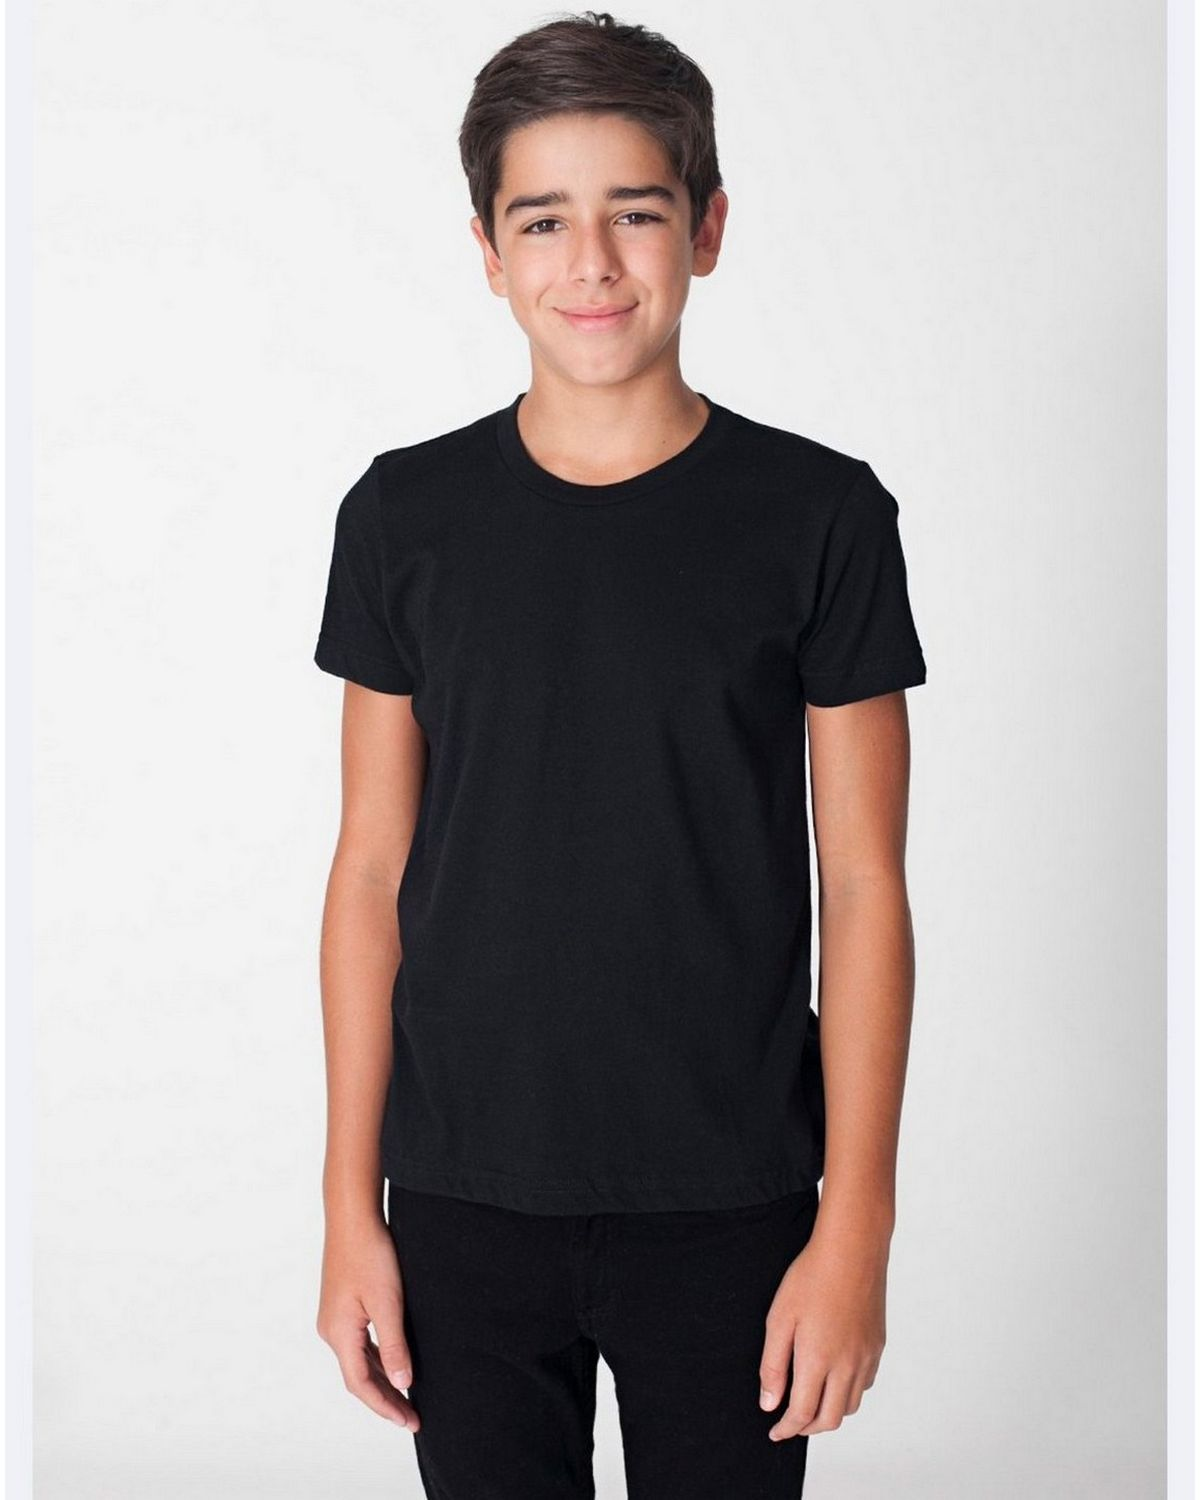 American Apparel BB201 Youth Short Sleeve Crewneck - Navy - 8 BB201